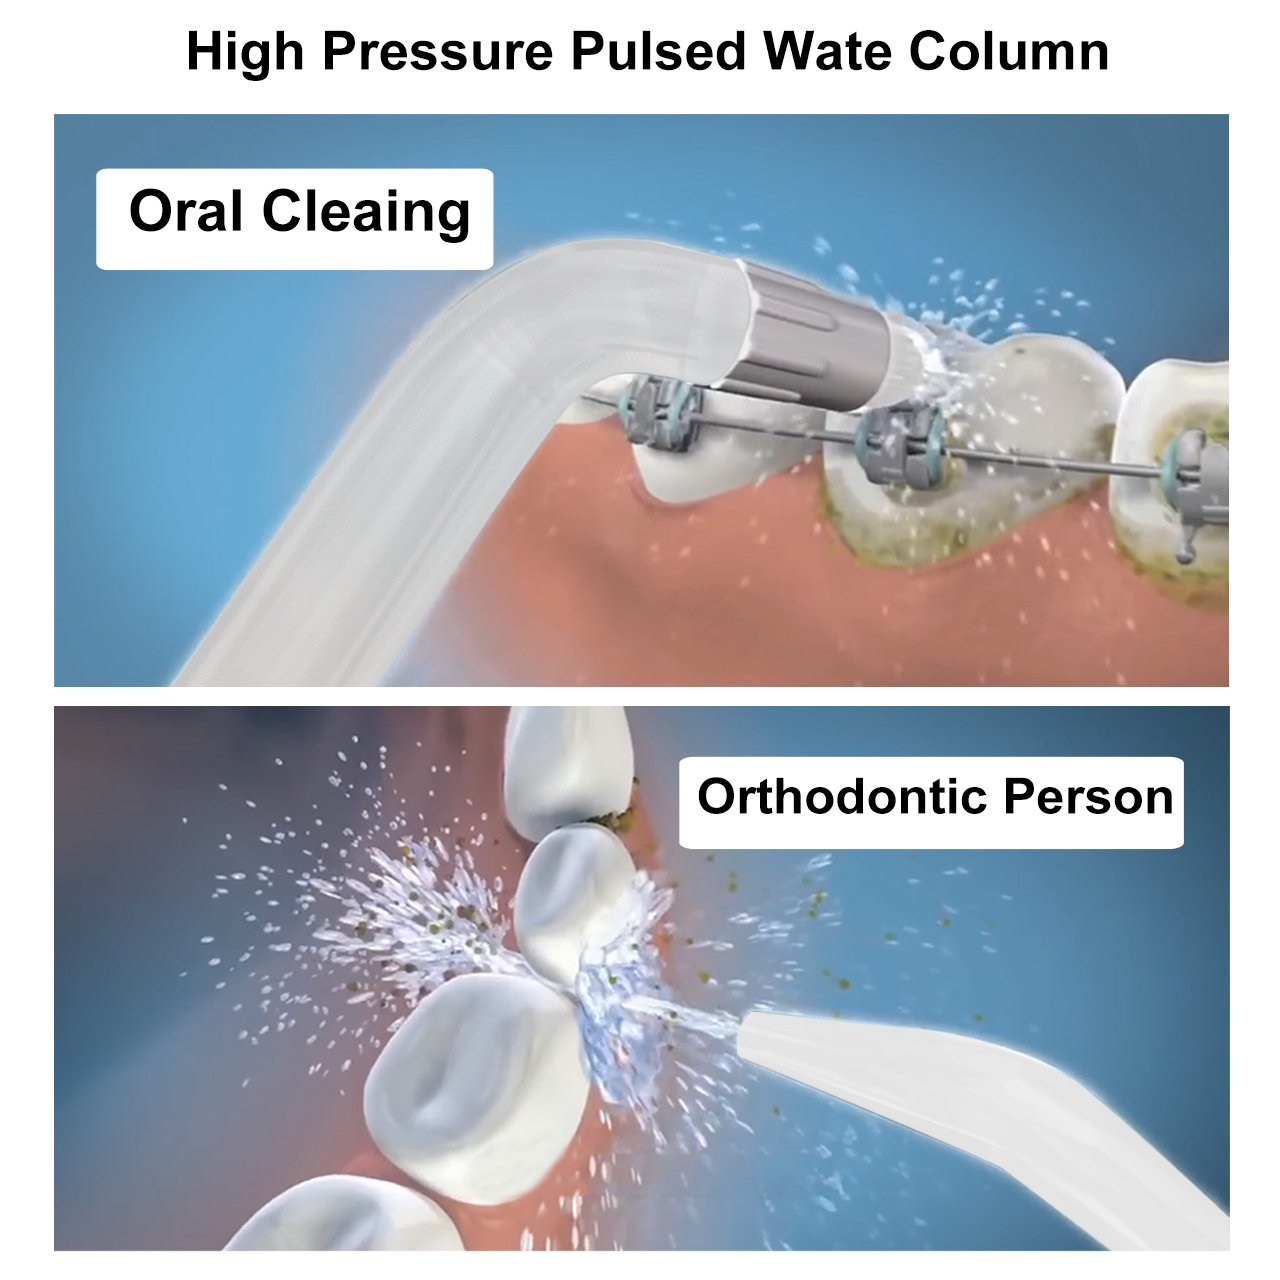 Water Flosser, XPretty 600ml Reservoir Professional Family Oral Irrigator with Adjustable Pressure Setting, Water Pick Dental Flosser with 7 Tips For Braces, Implants, Bridges, Global Voltage by XPretty (Image #6)